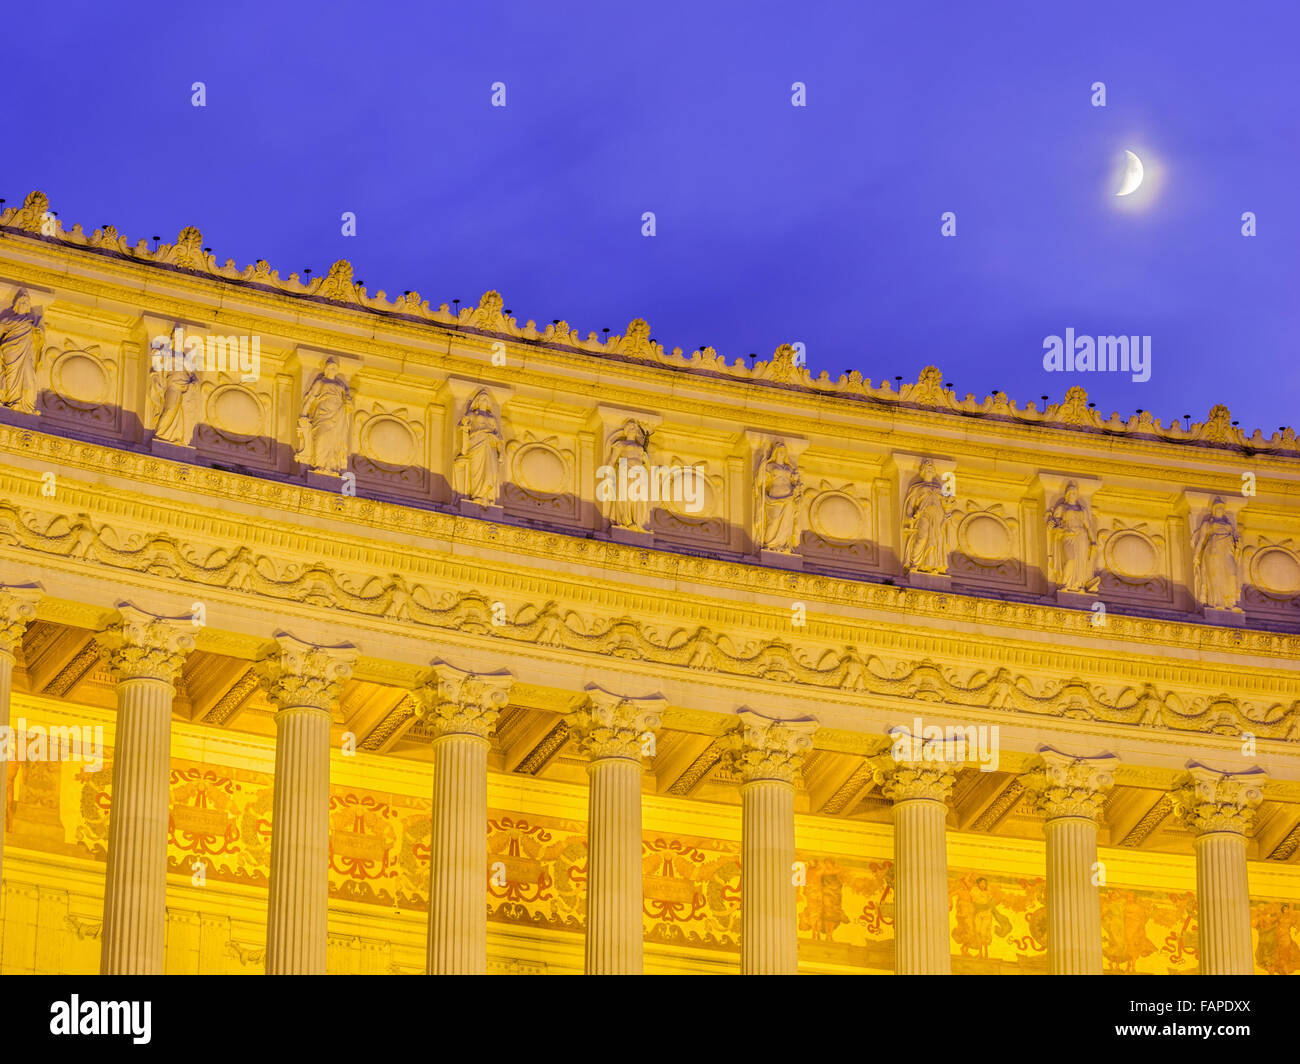 Altar of the Fatherland in Rome, Italy Stock Photo